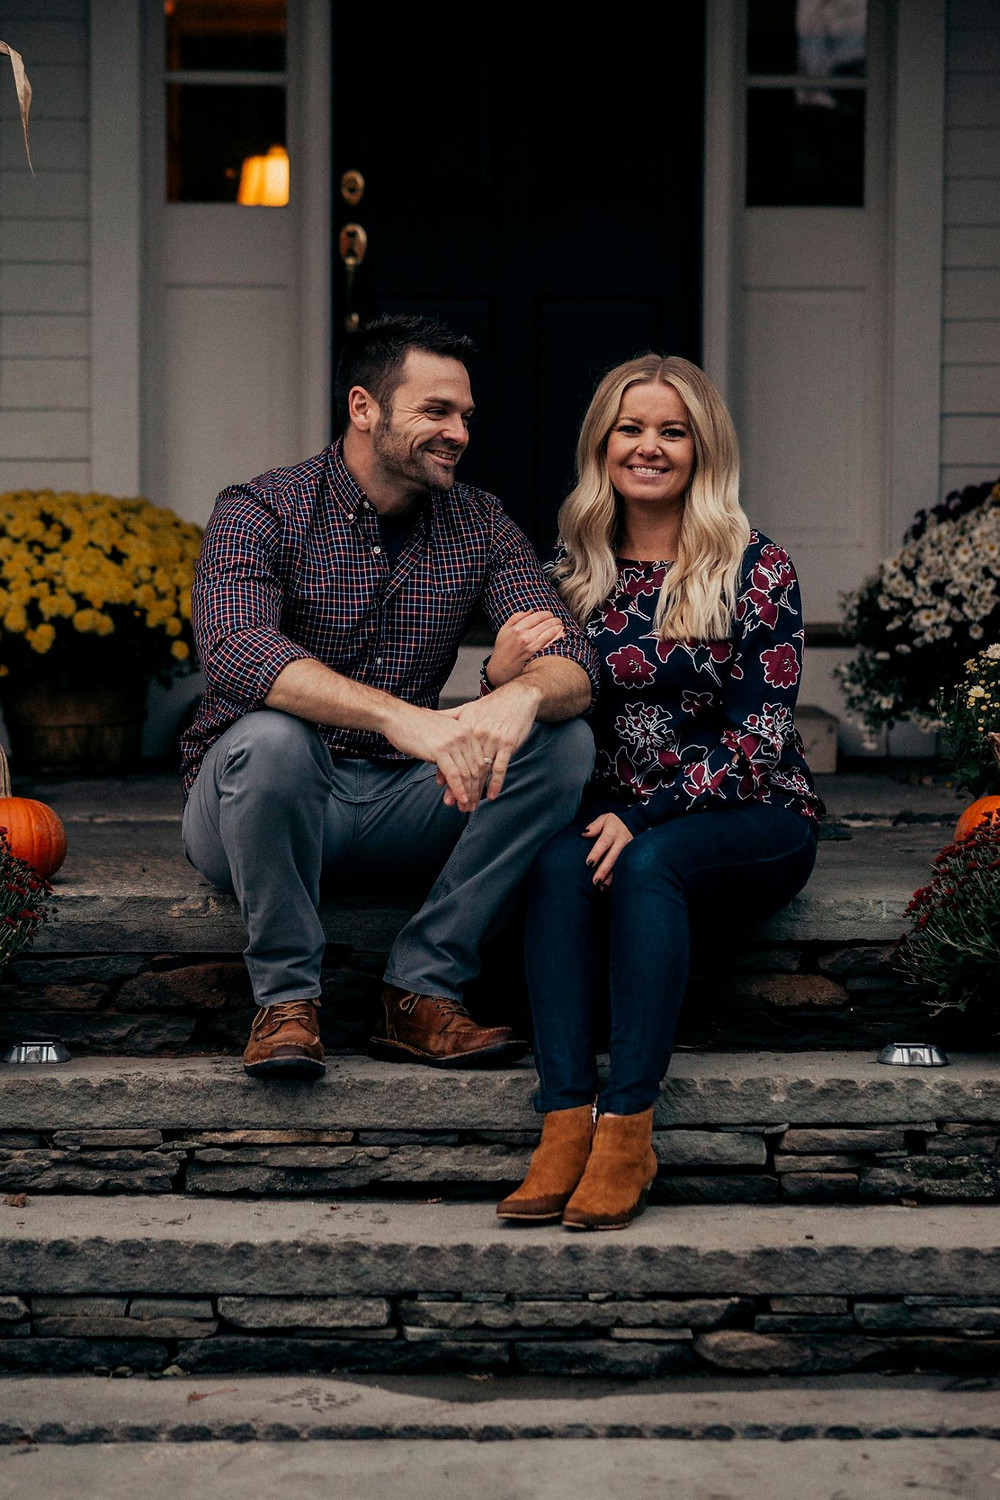 man and woman sitting on steps smiling